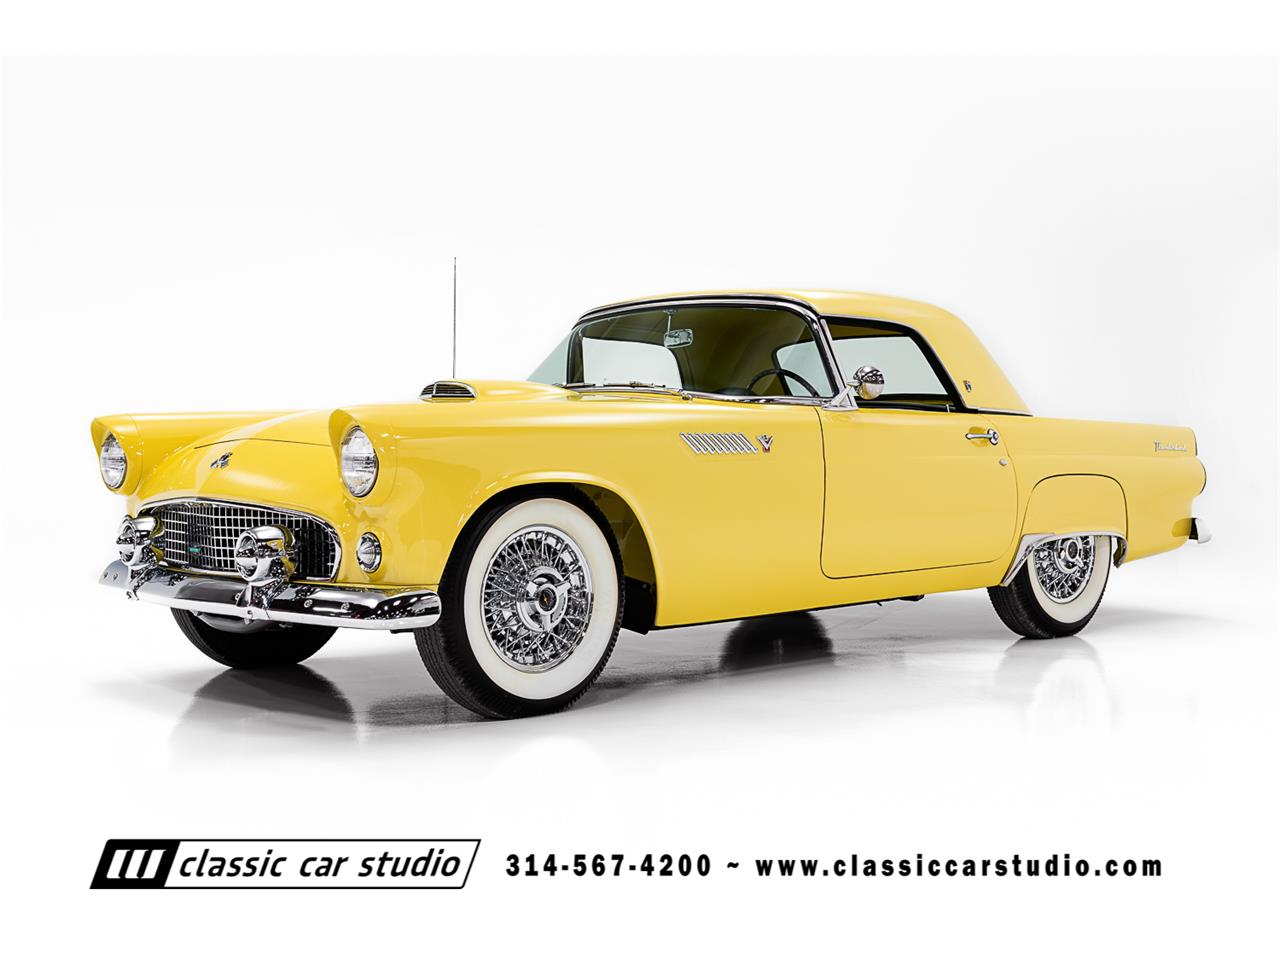 Large Picture of 1955 Ford Thunderbird located in SAINT LOUIS Missouri - PKP1